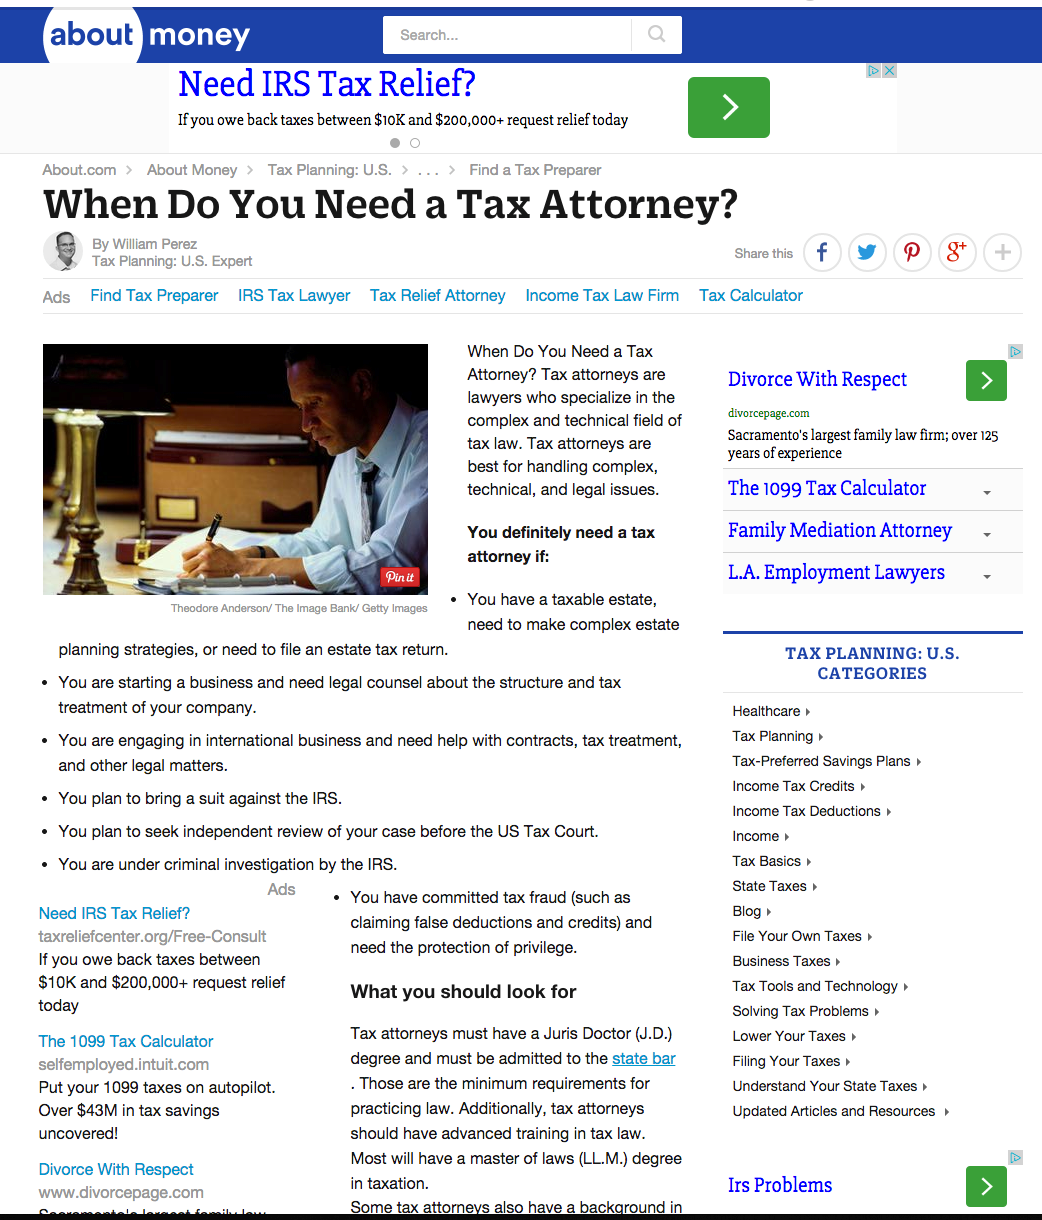 When Do You Need a Tax Attorney